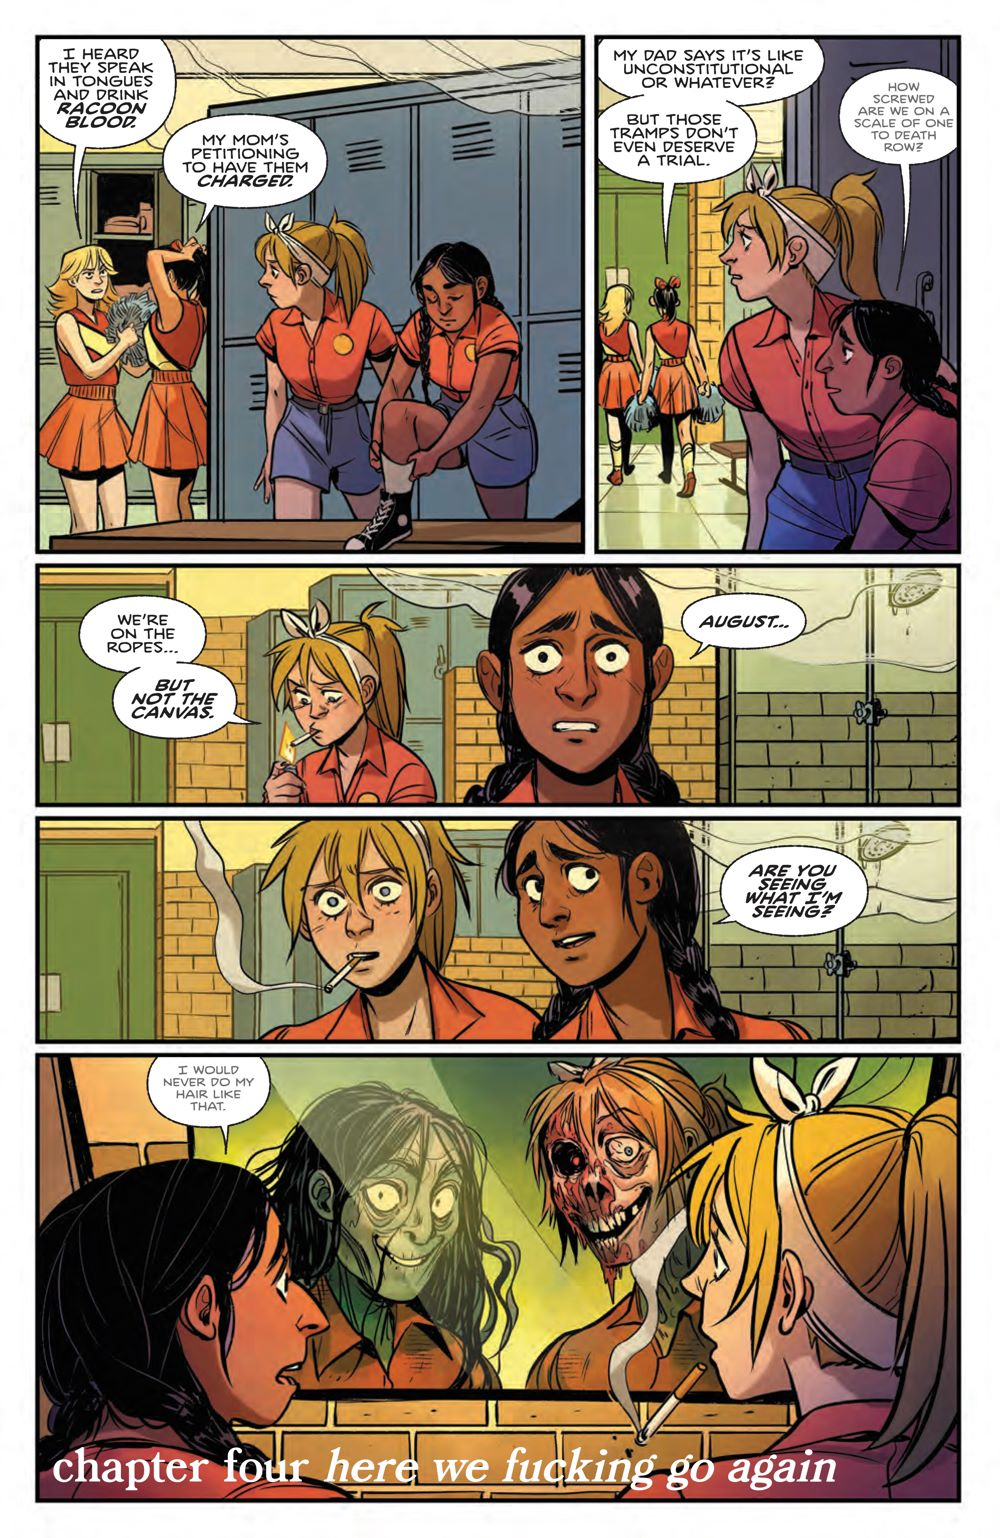 ProctorValleyRoad_004_PRESS_3 ComicList Previews: PROCTOR VALLEY ROAD #4 (OF 5)